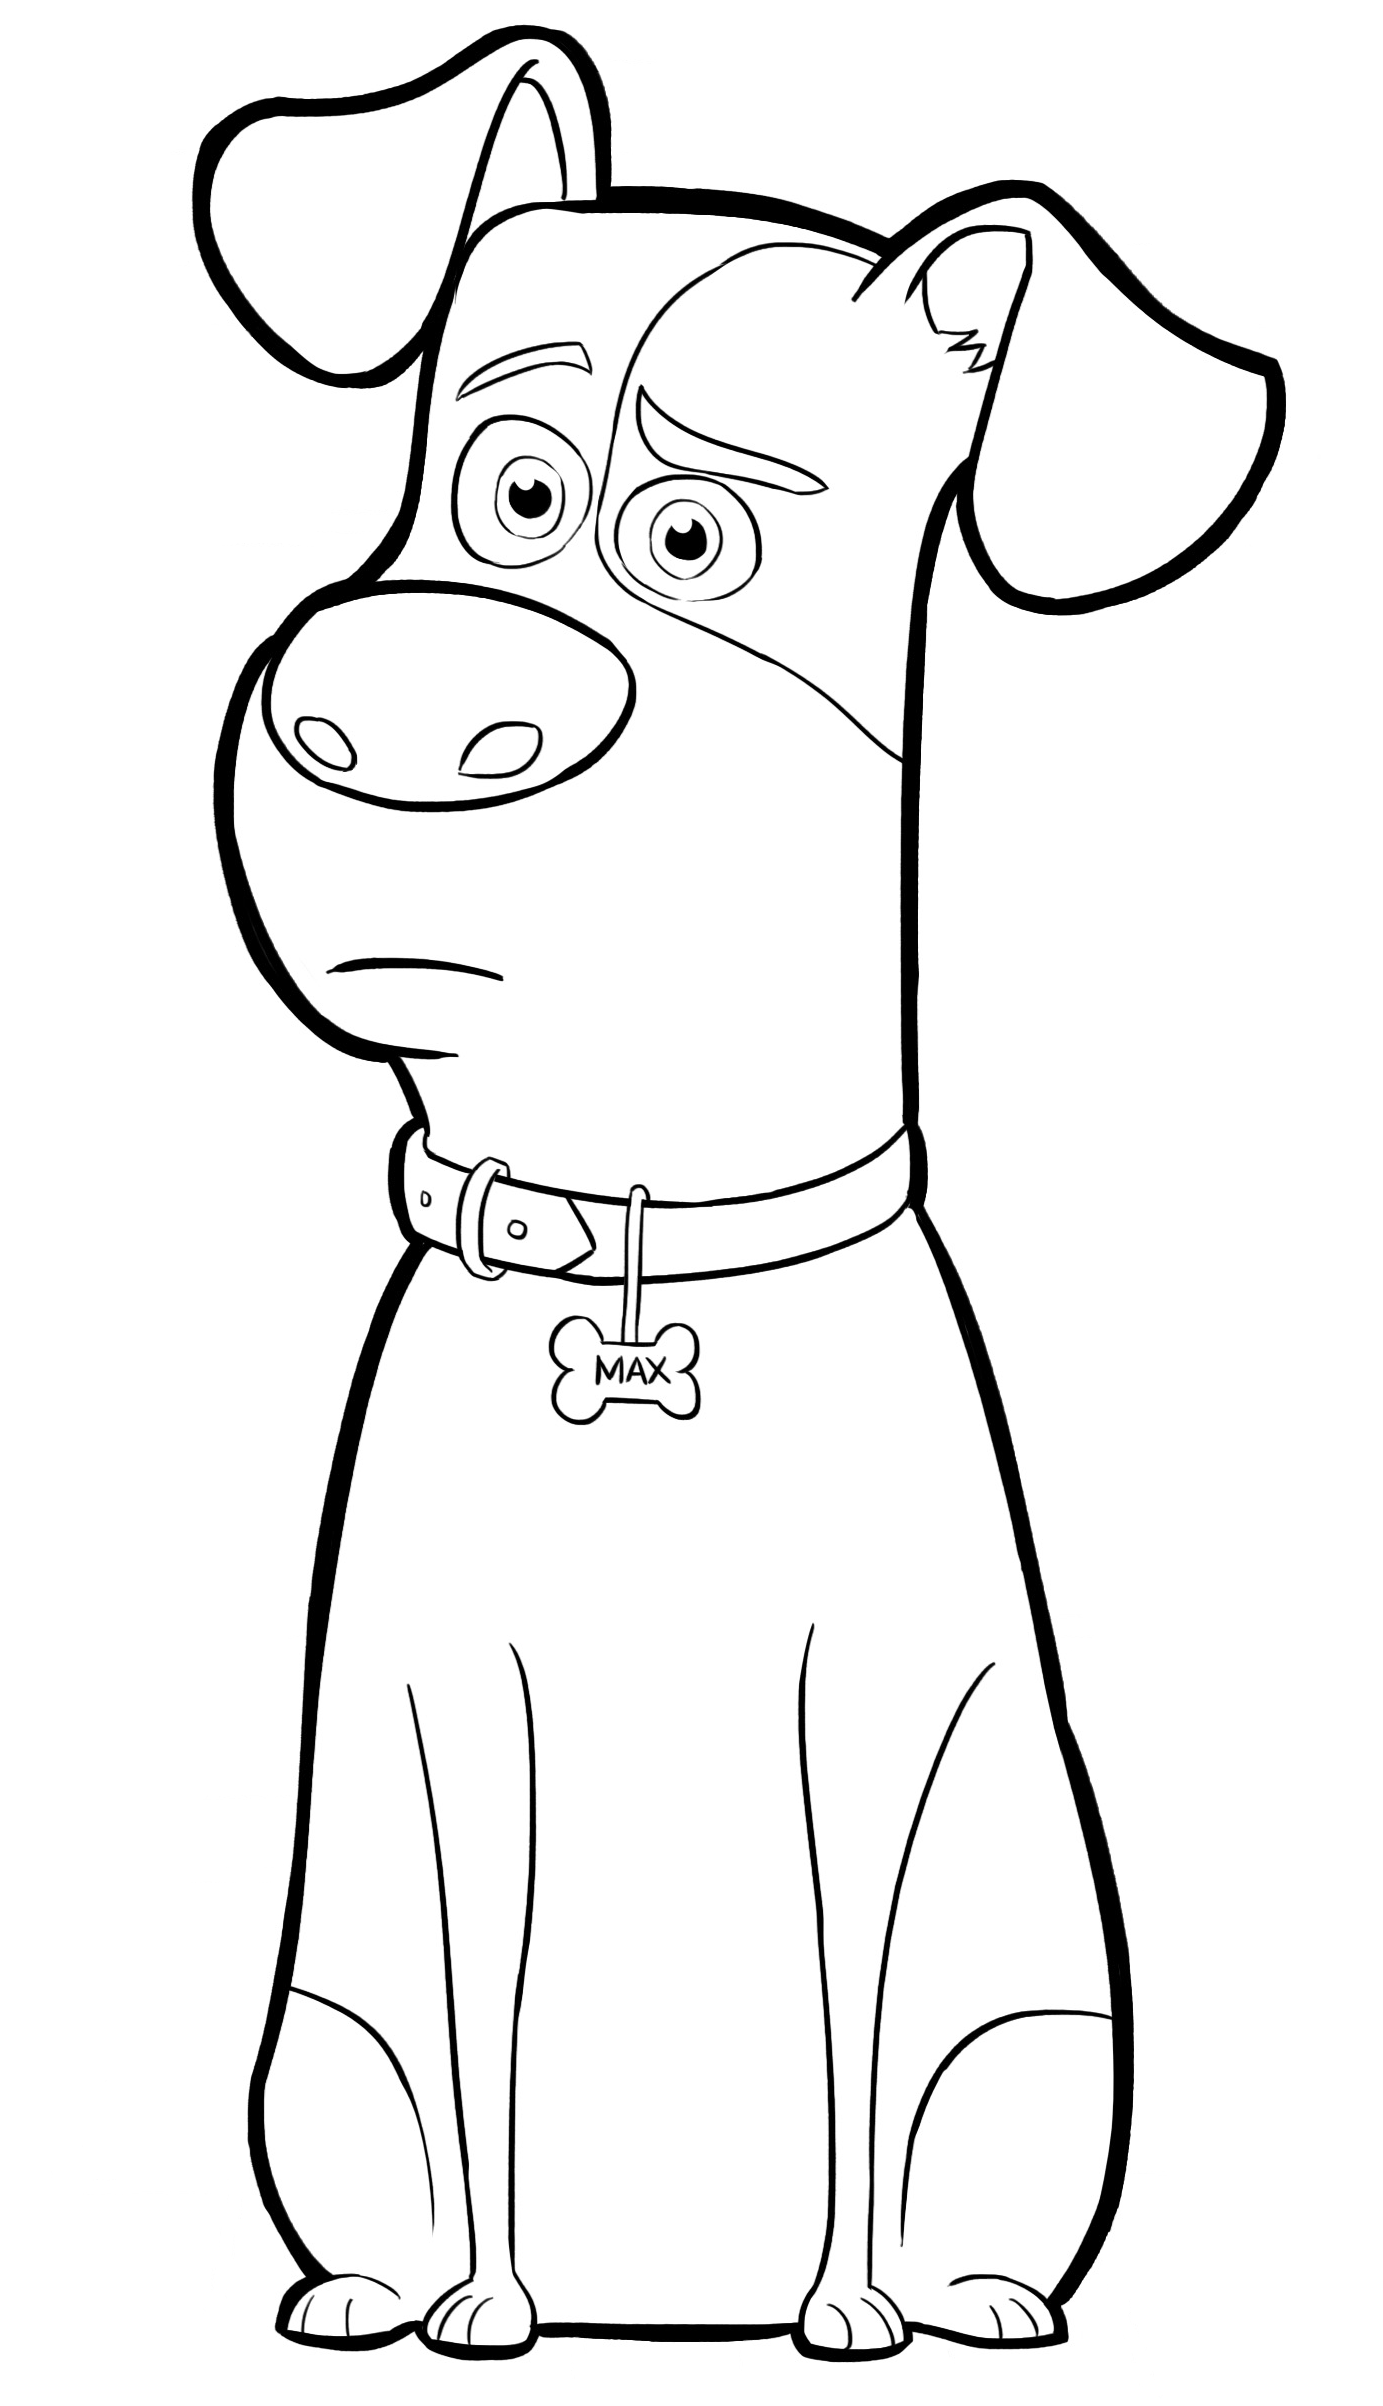 free pictures coloring pages - photo#2